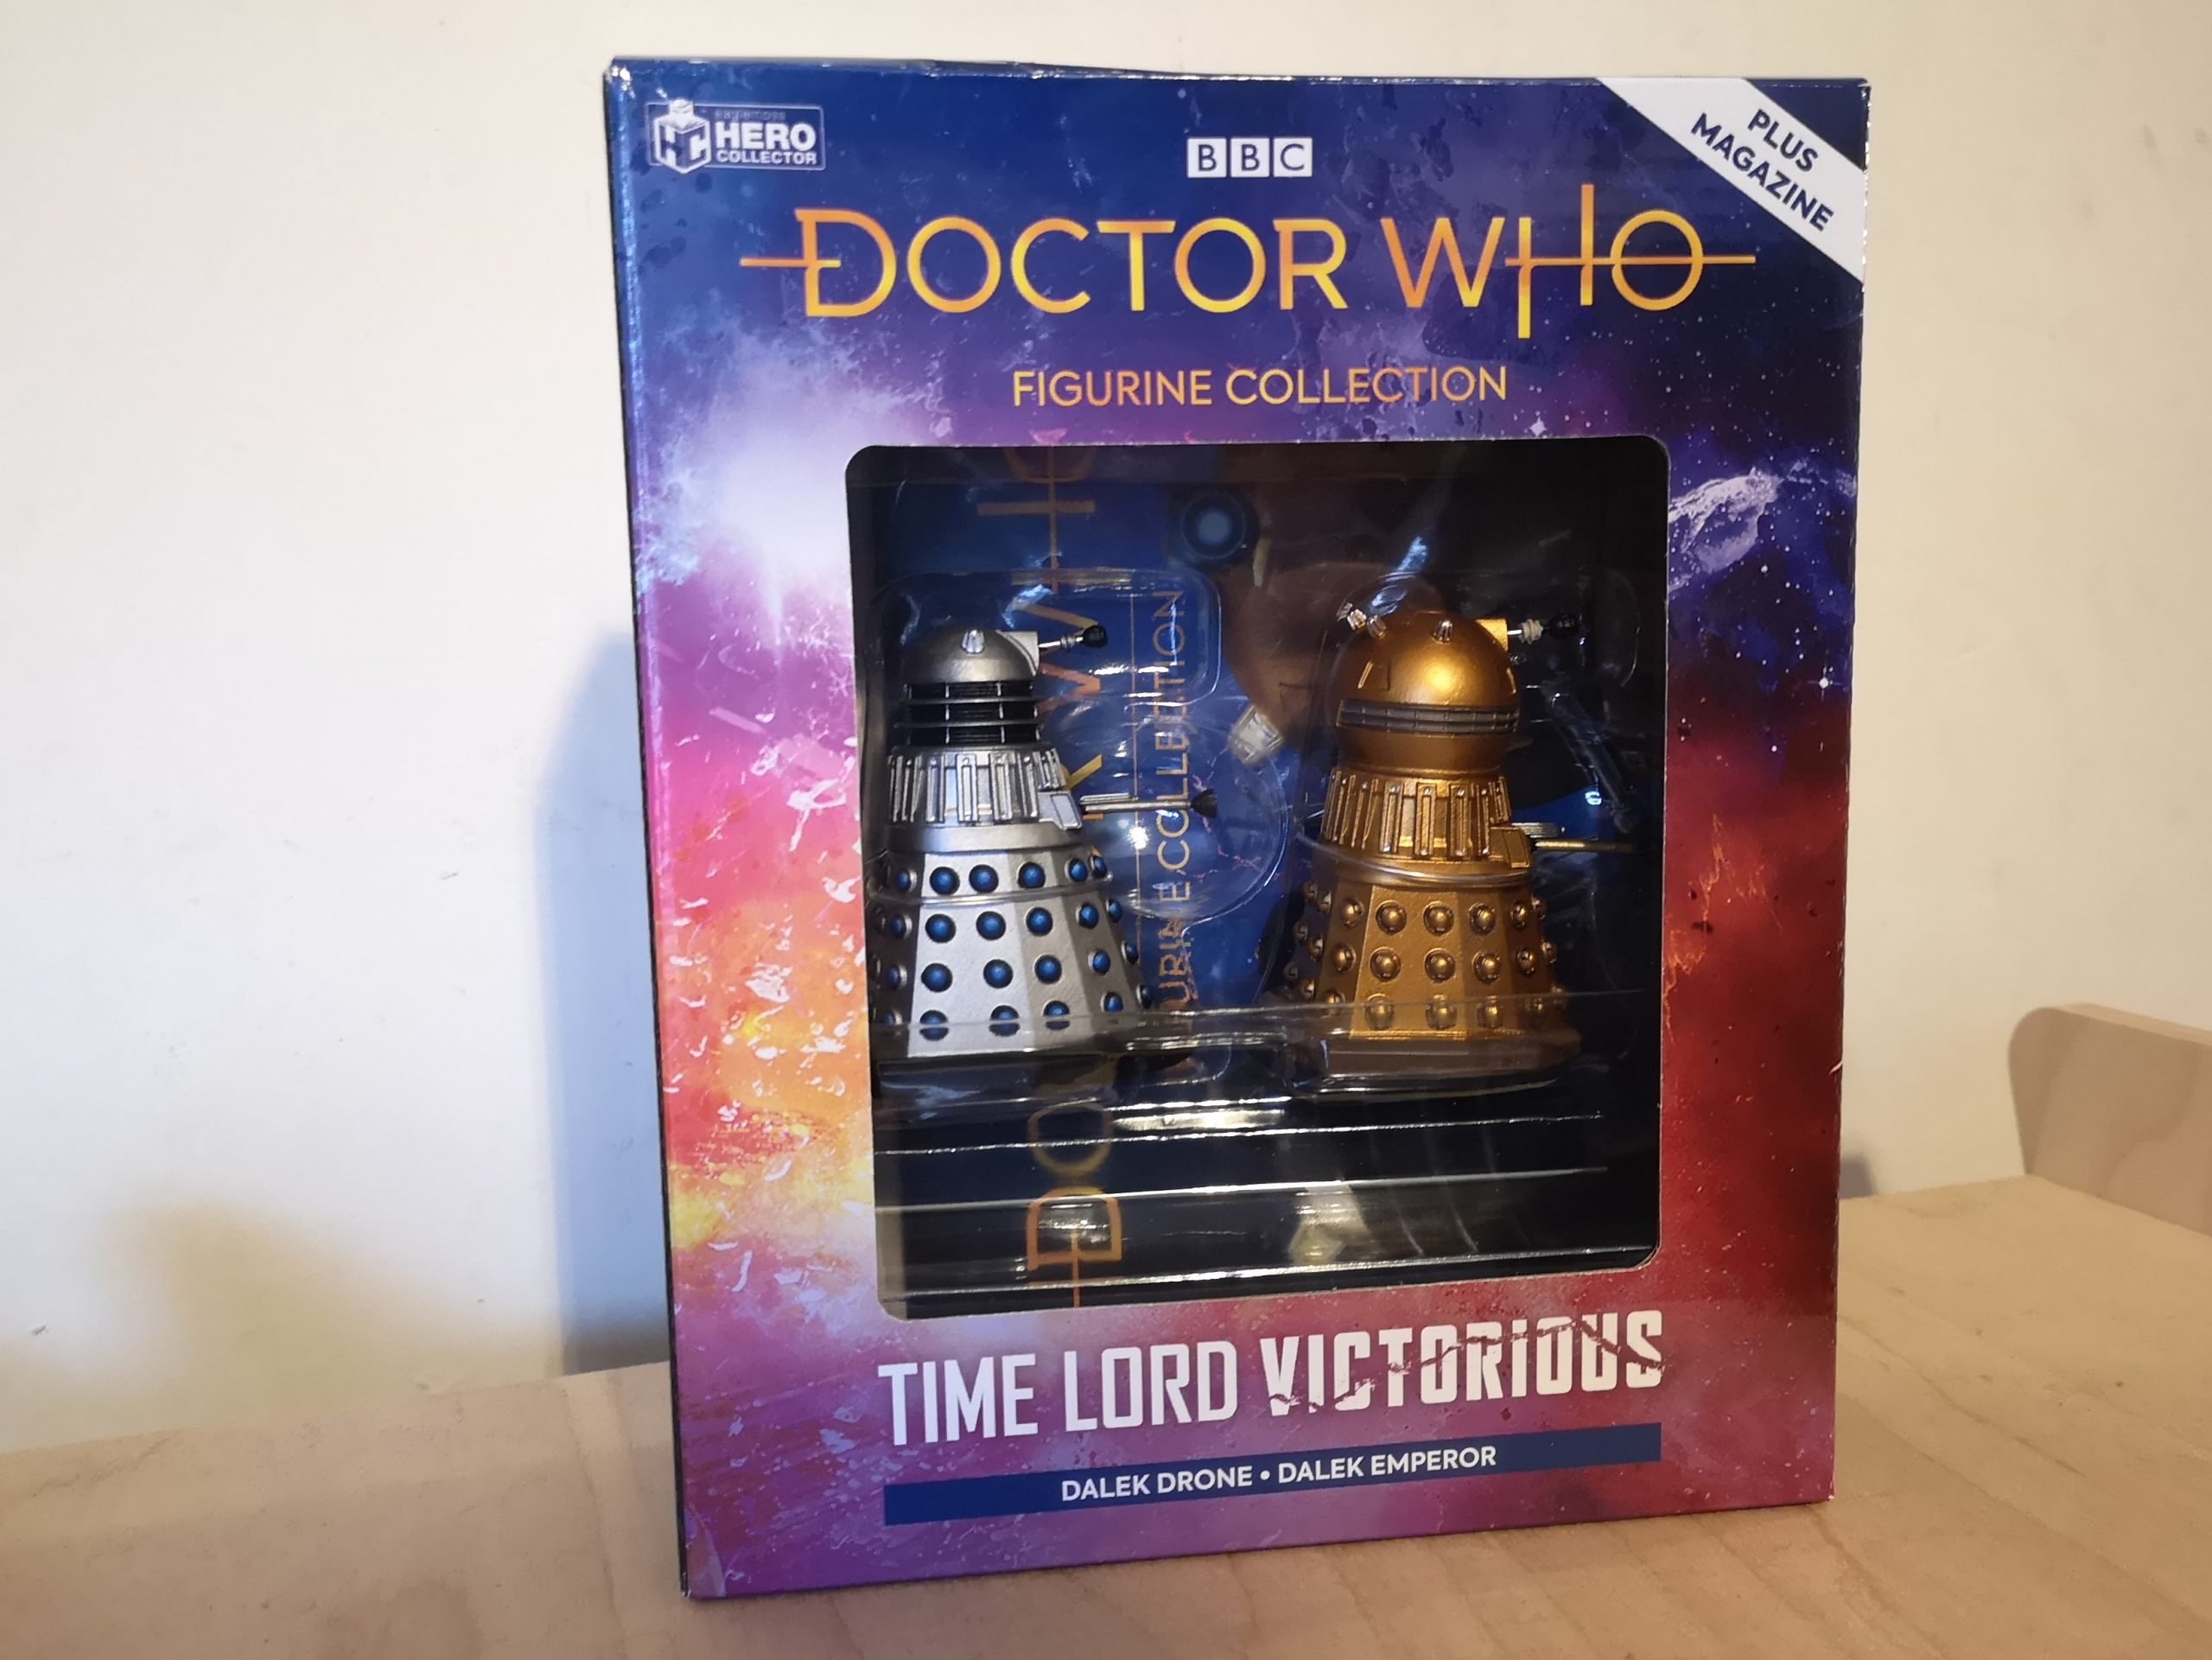 The Dalek Drone and Golden Emperor Figurines from Hero Collector Photo c) Blogtor Who Doctor Who Time Lord Victorious Figurine Collection Eaglemoss